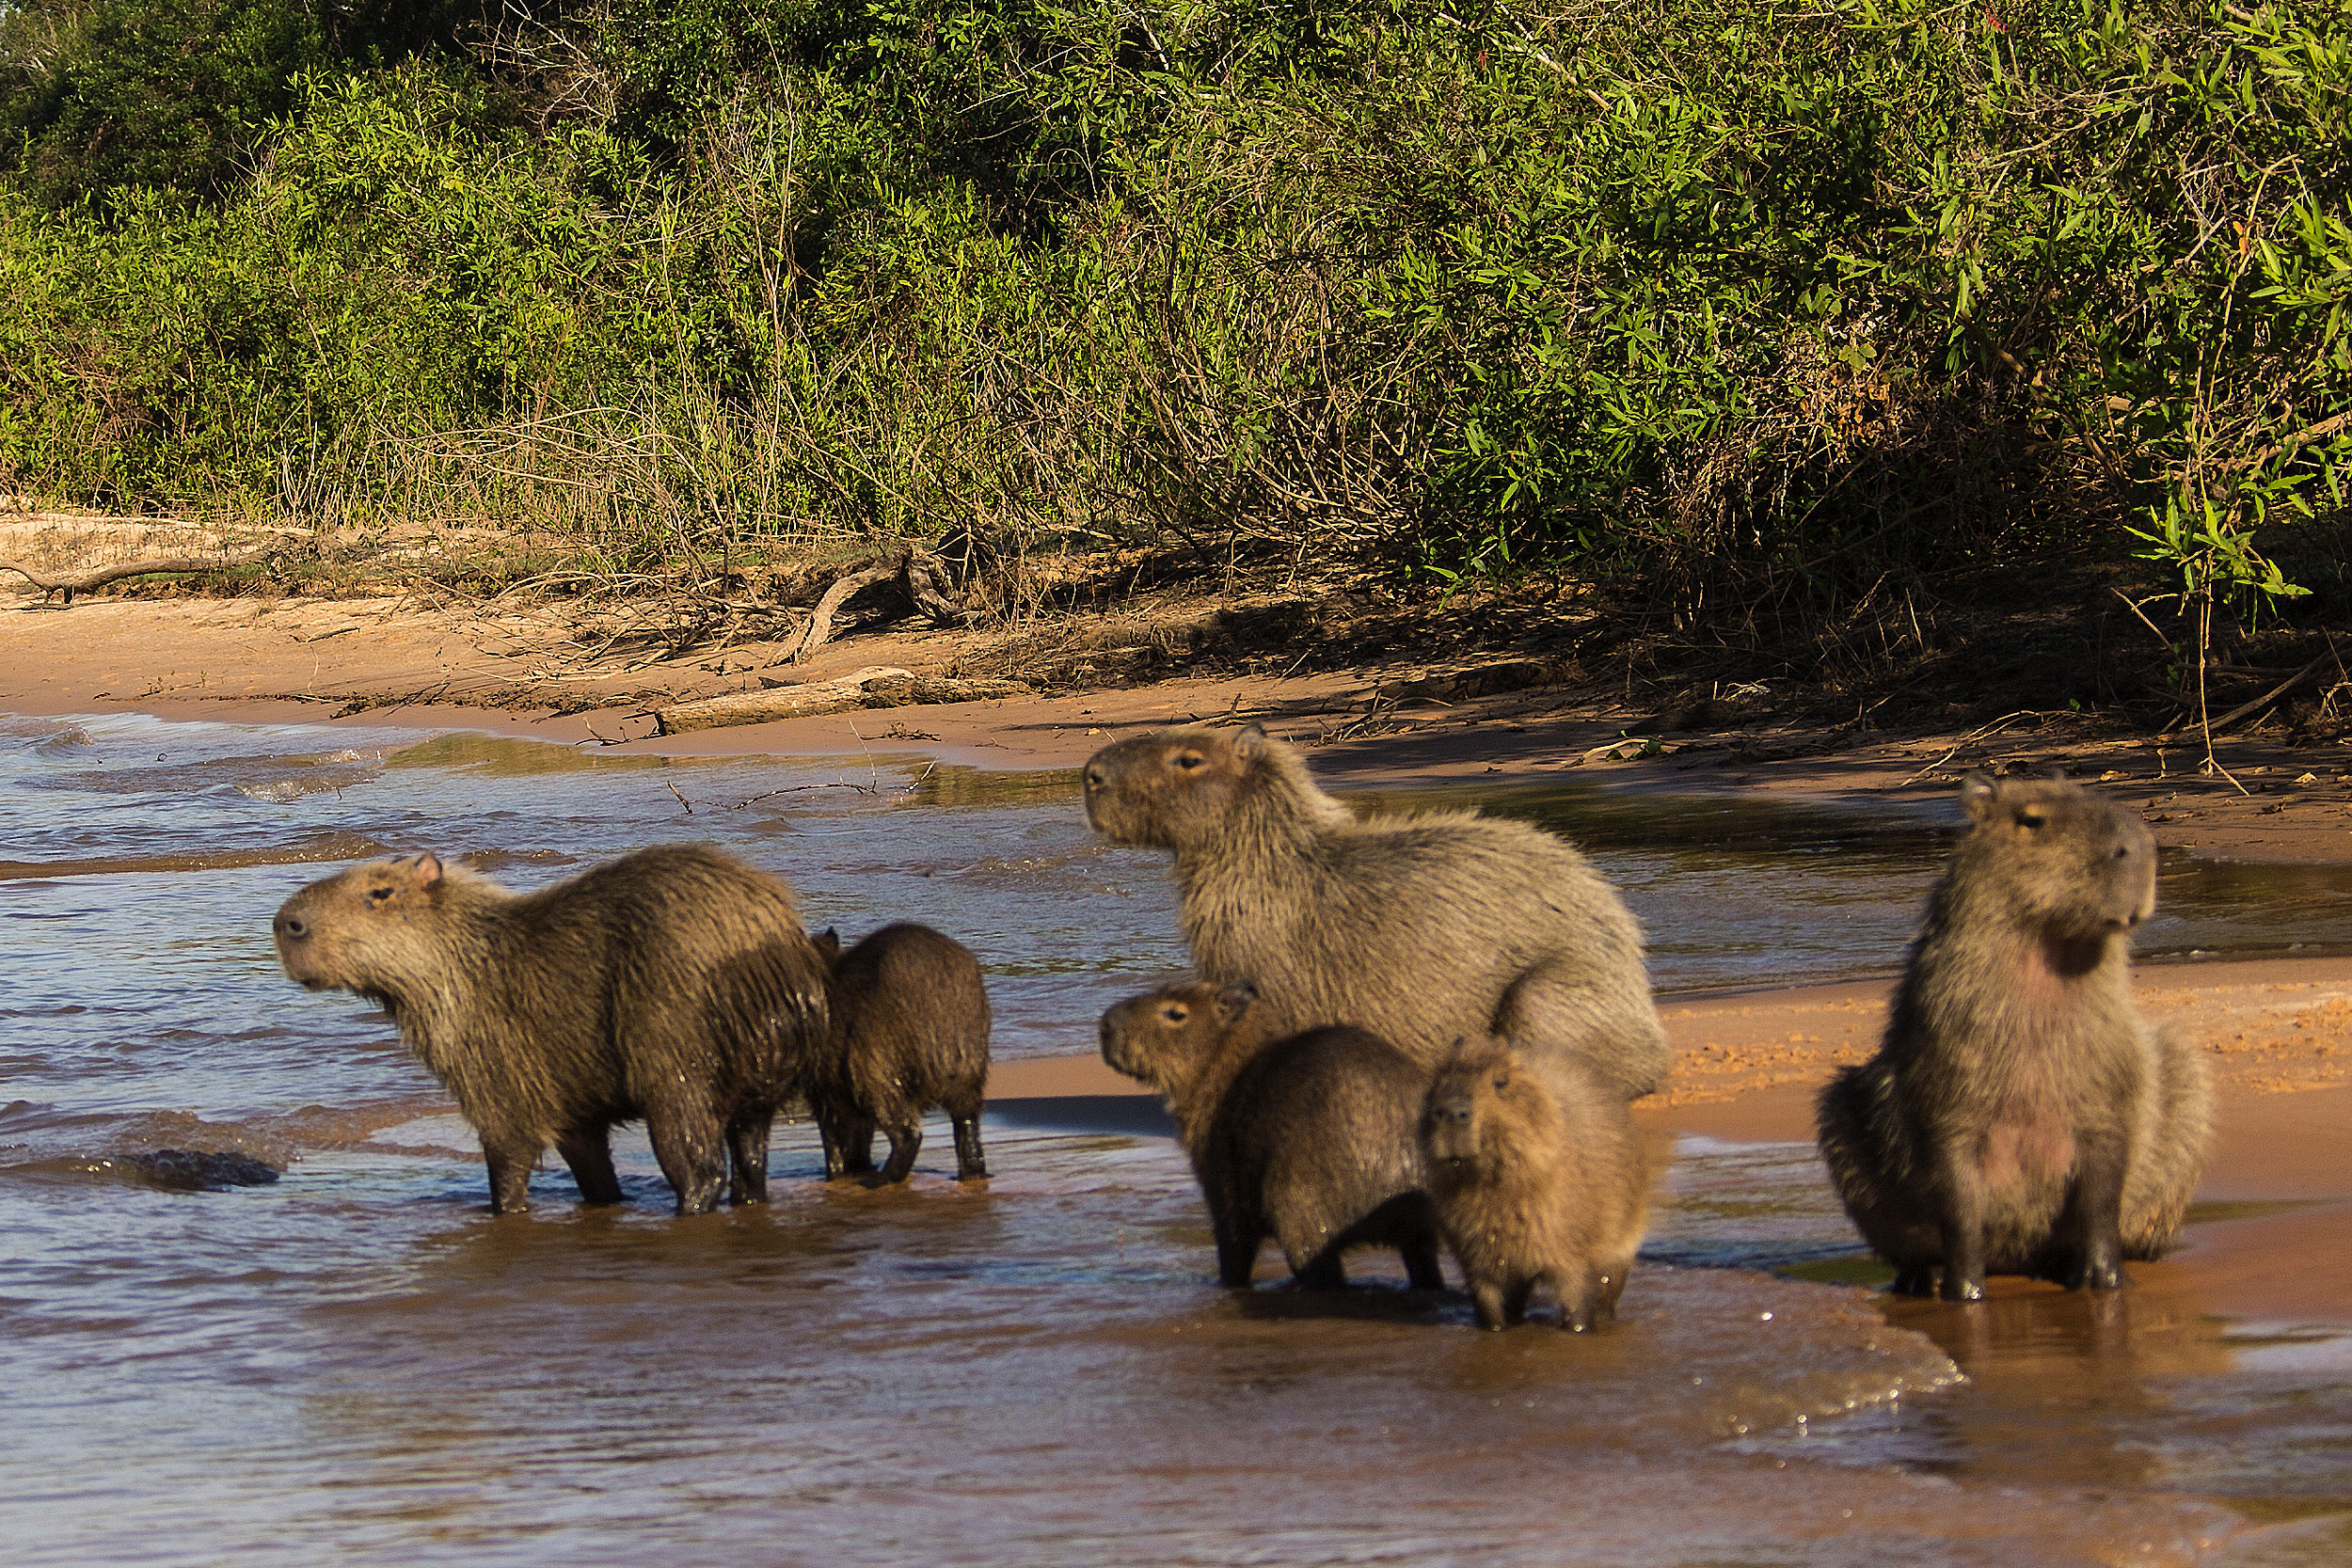 A group of young and old capybara on a river bank, South America